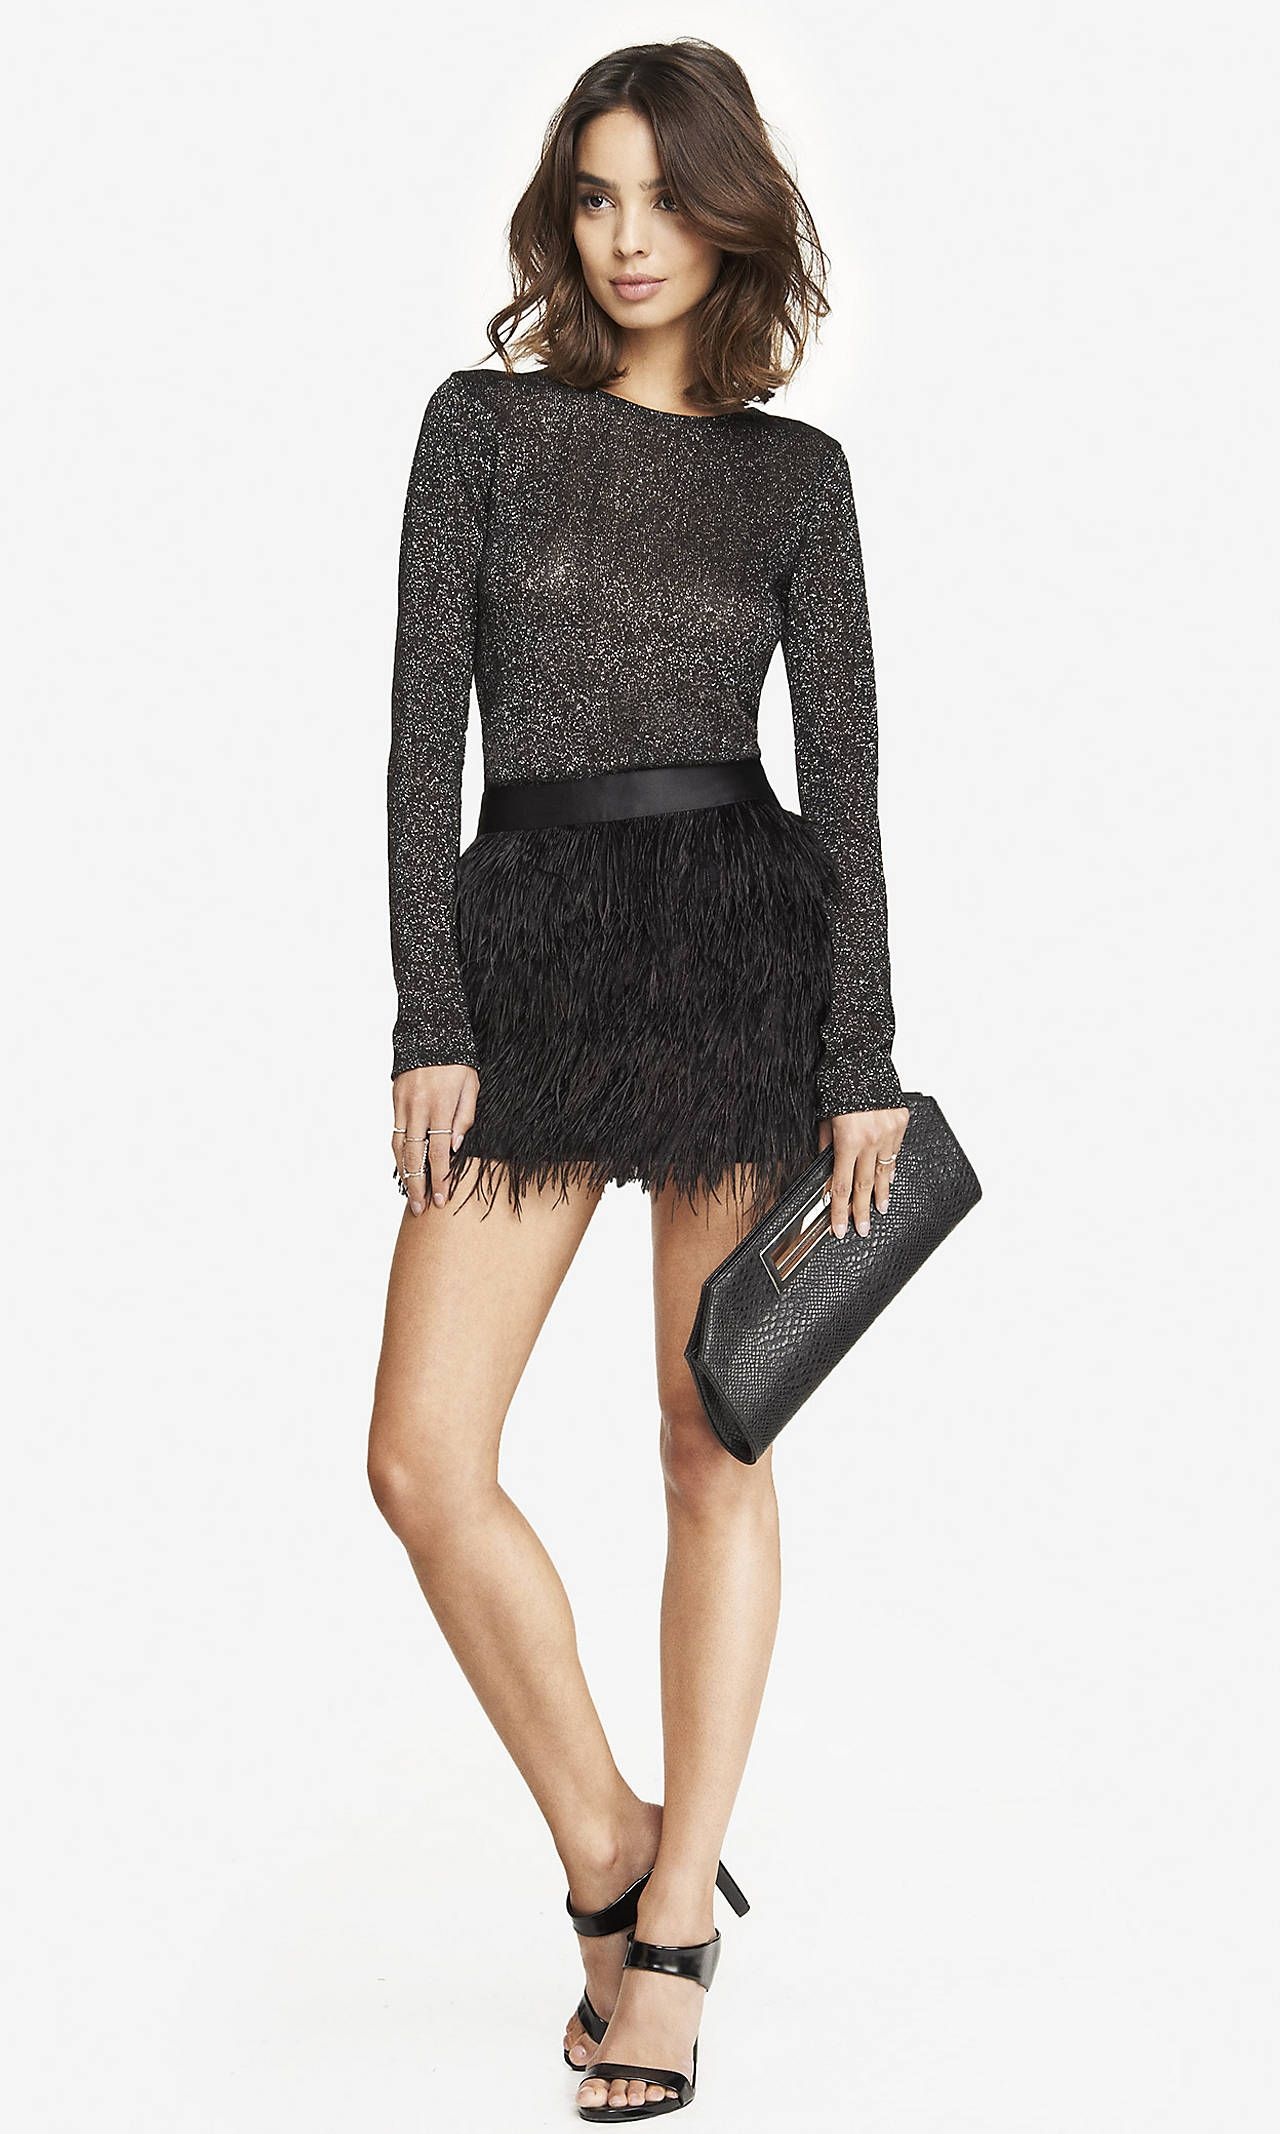 OSTRICH FEATHER FRINGE MINI SKIRT Express Eve outfit